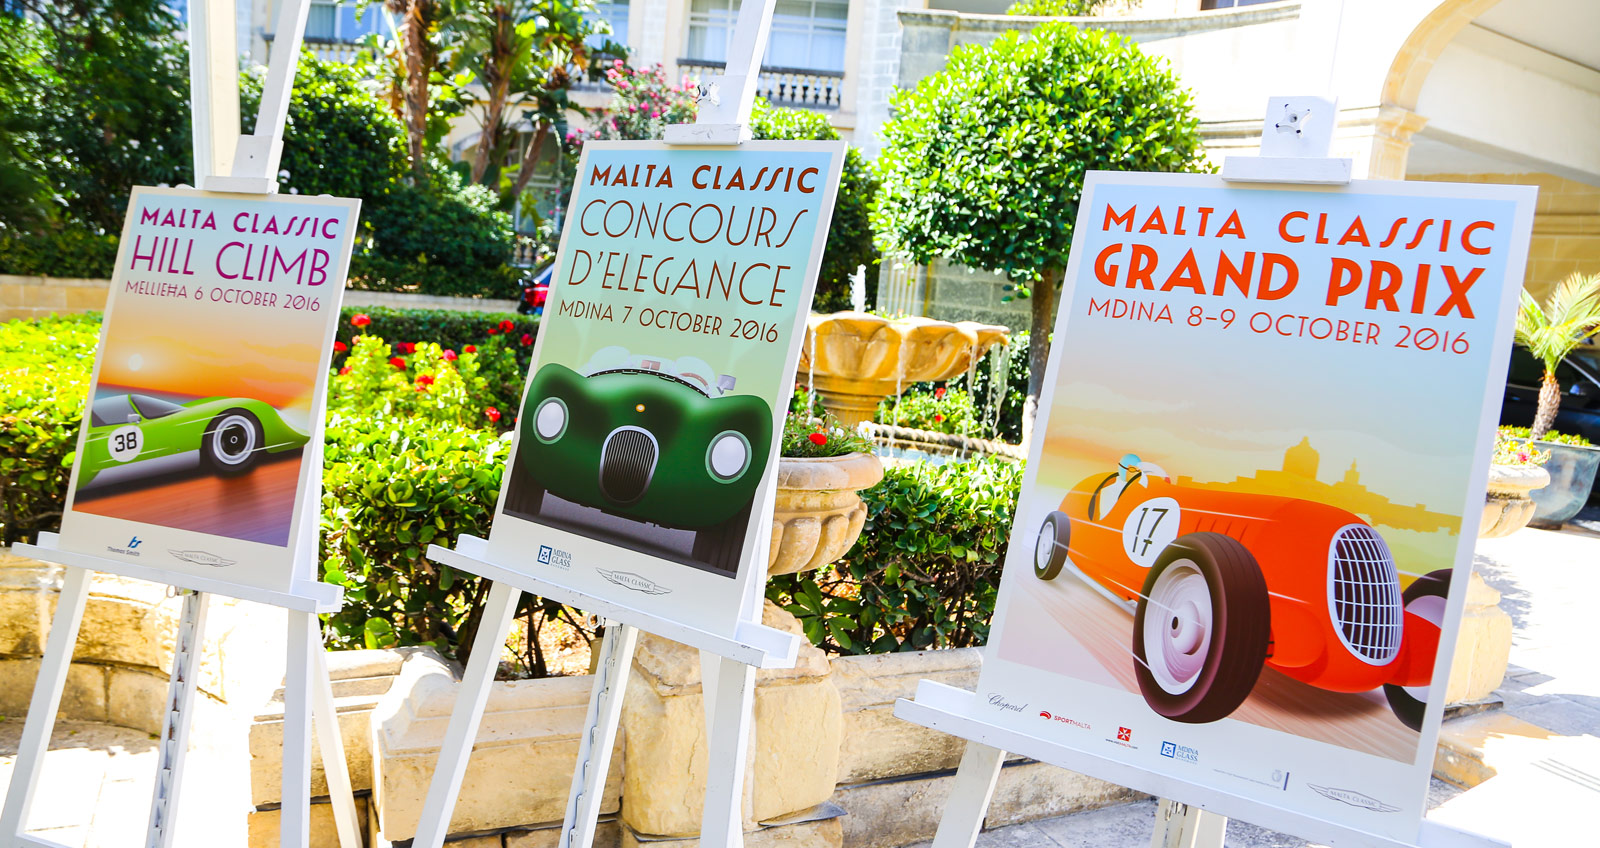 Gearing Up For The Malta Classic - One Of Europe's Finest Vintage Car Rallies 7